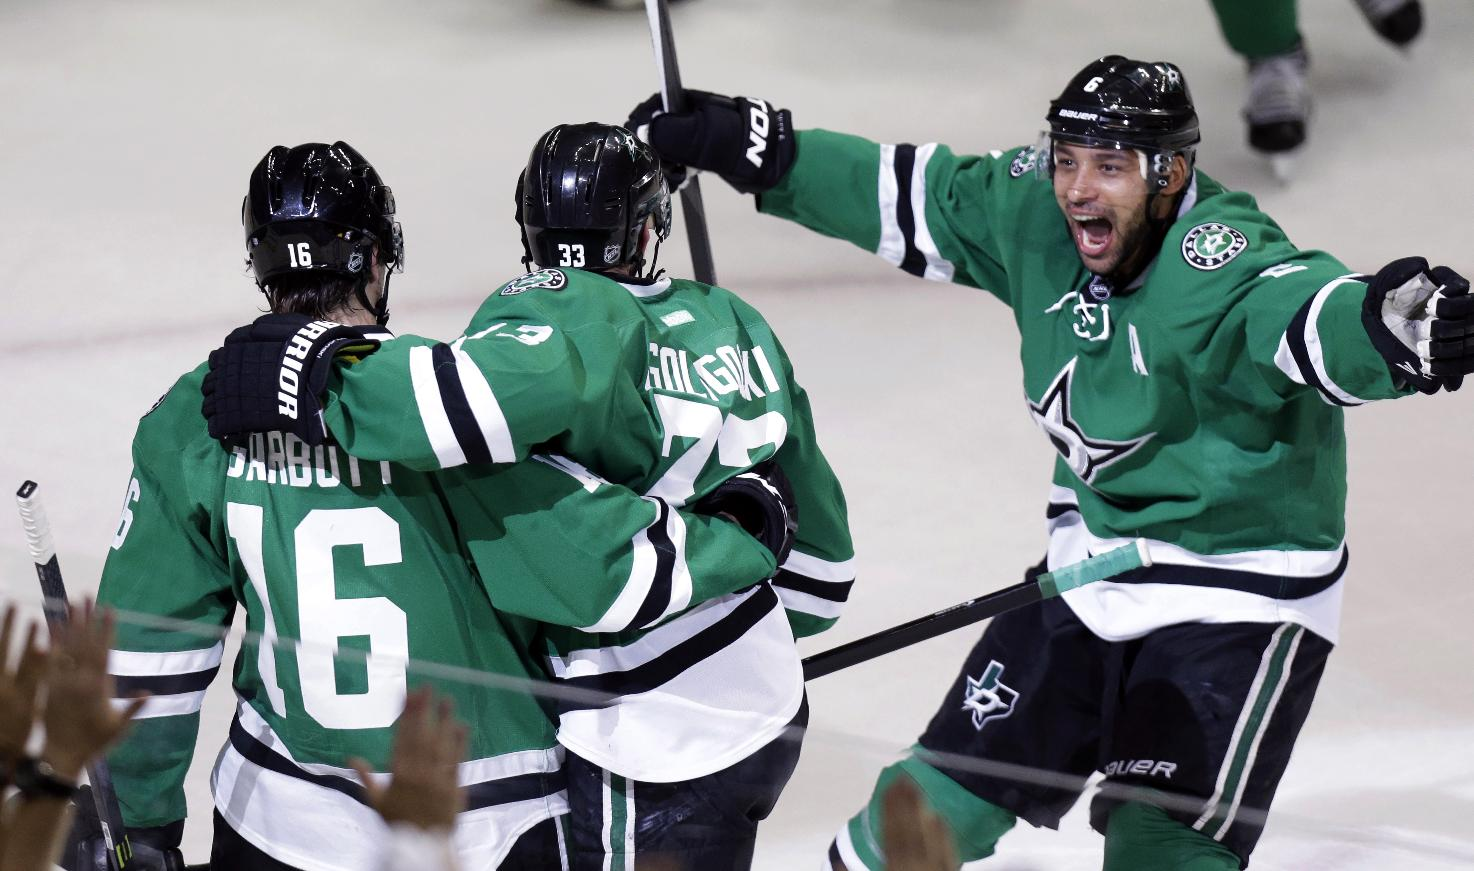 Ducks beat Stars 5-4 in OT to clinch series in 6